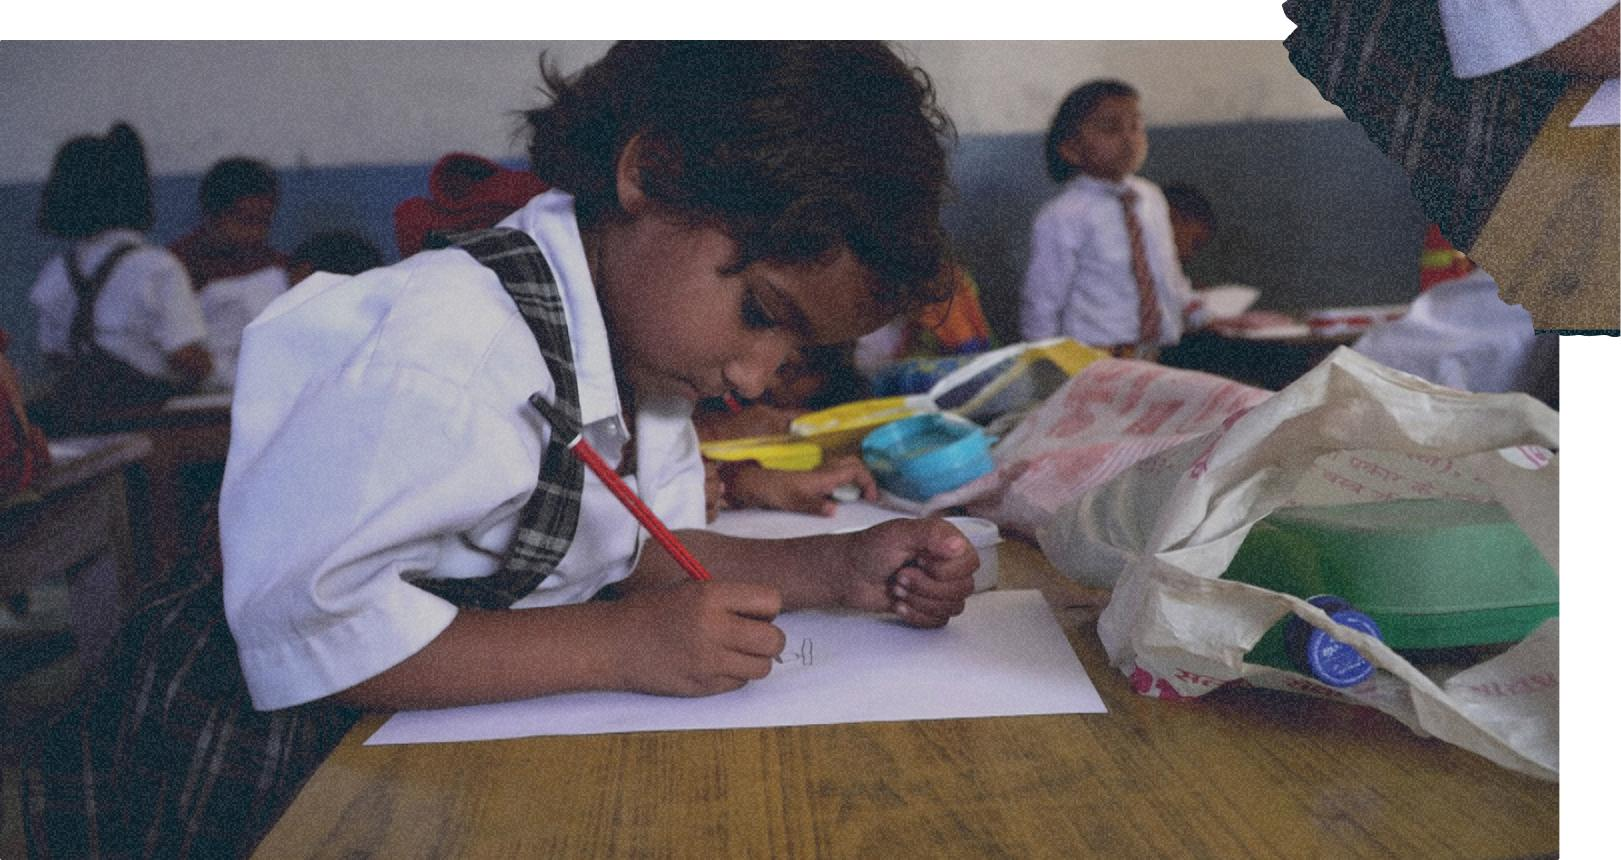 Child writing on paper with pencil in class